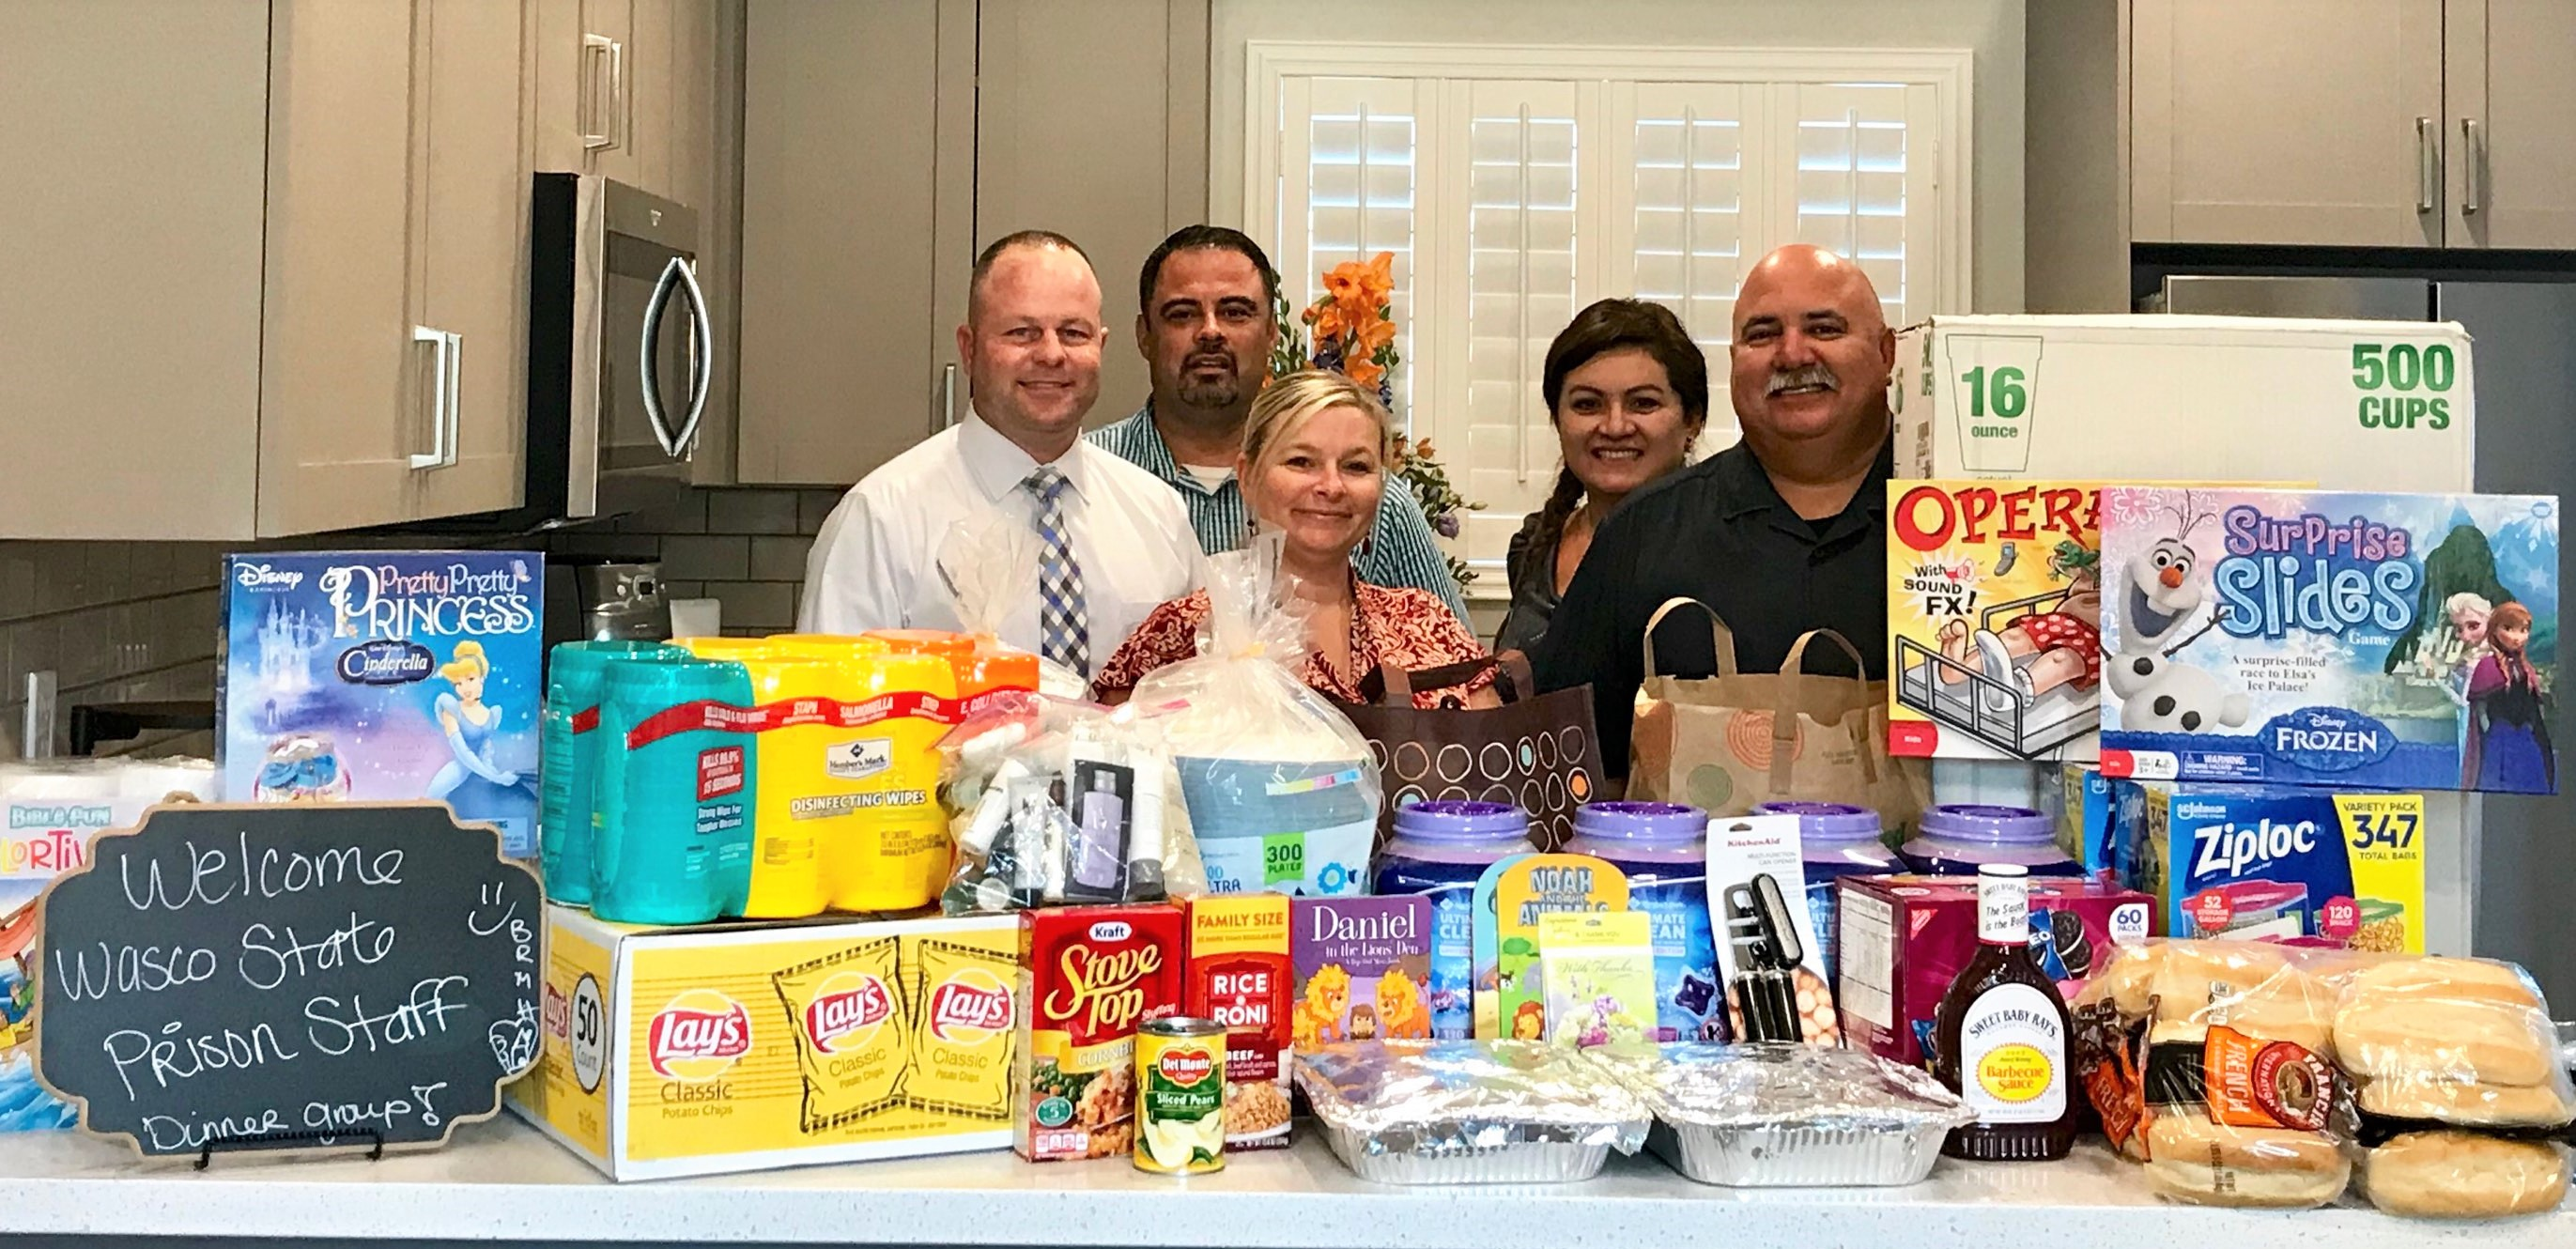 People stand behind large pile of food, kitchen supplies and games.